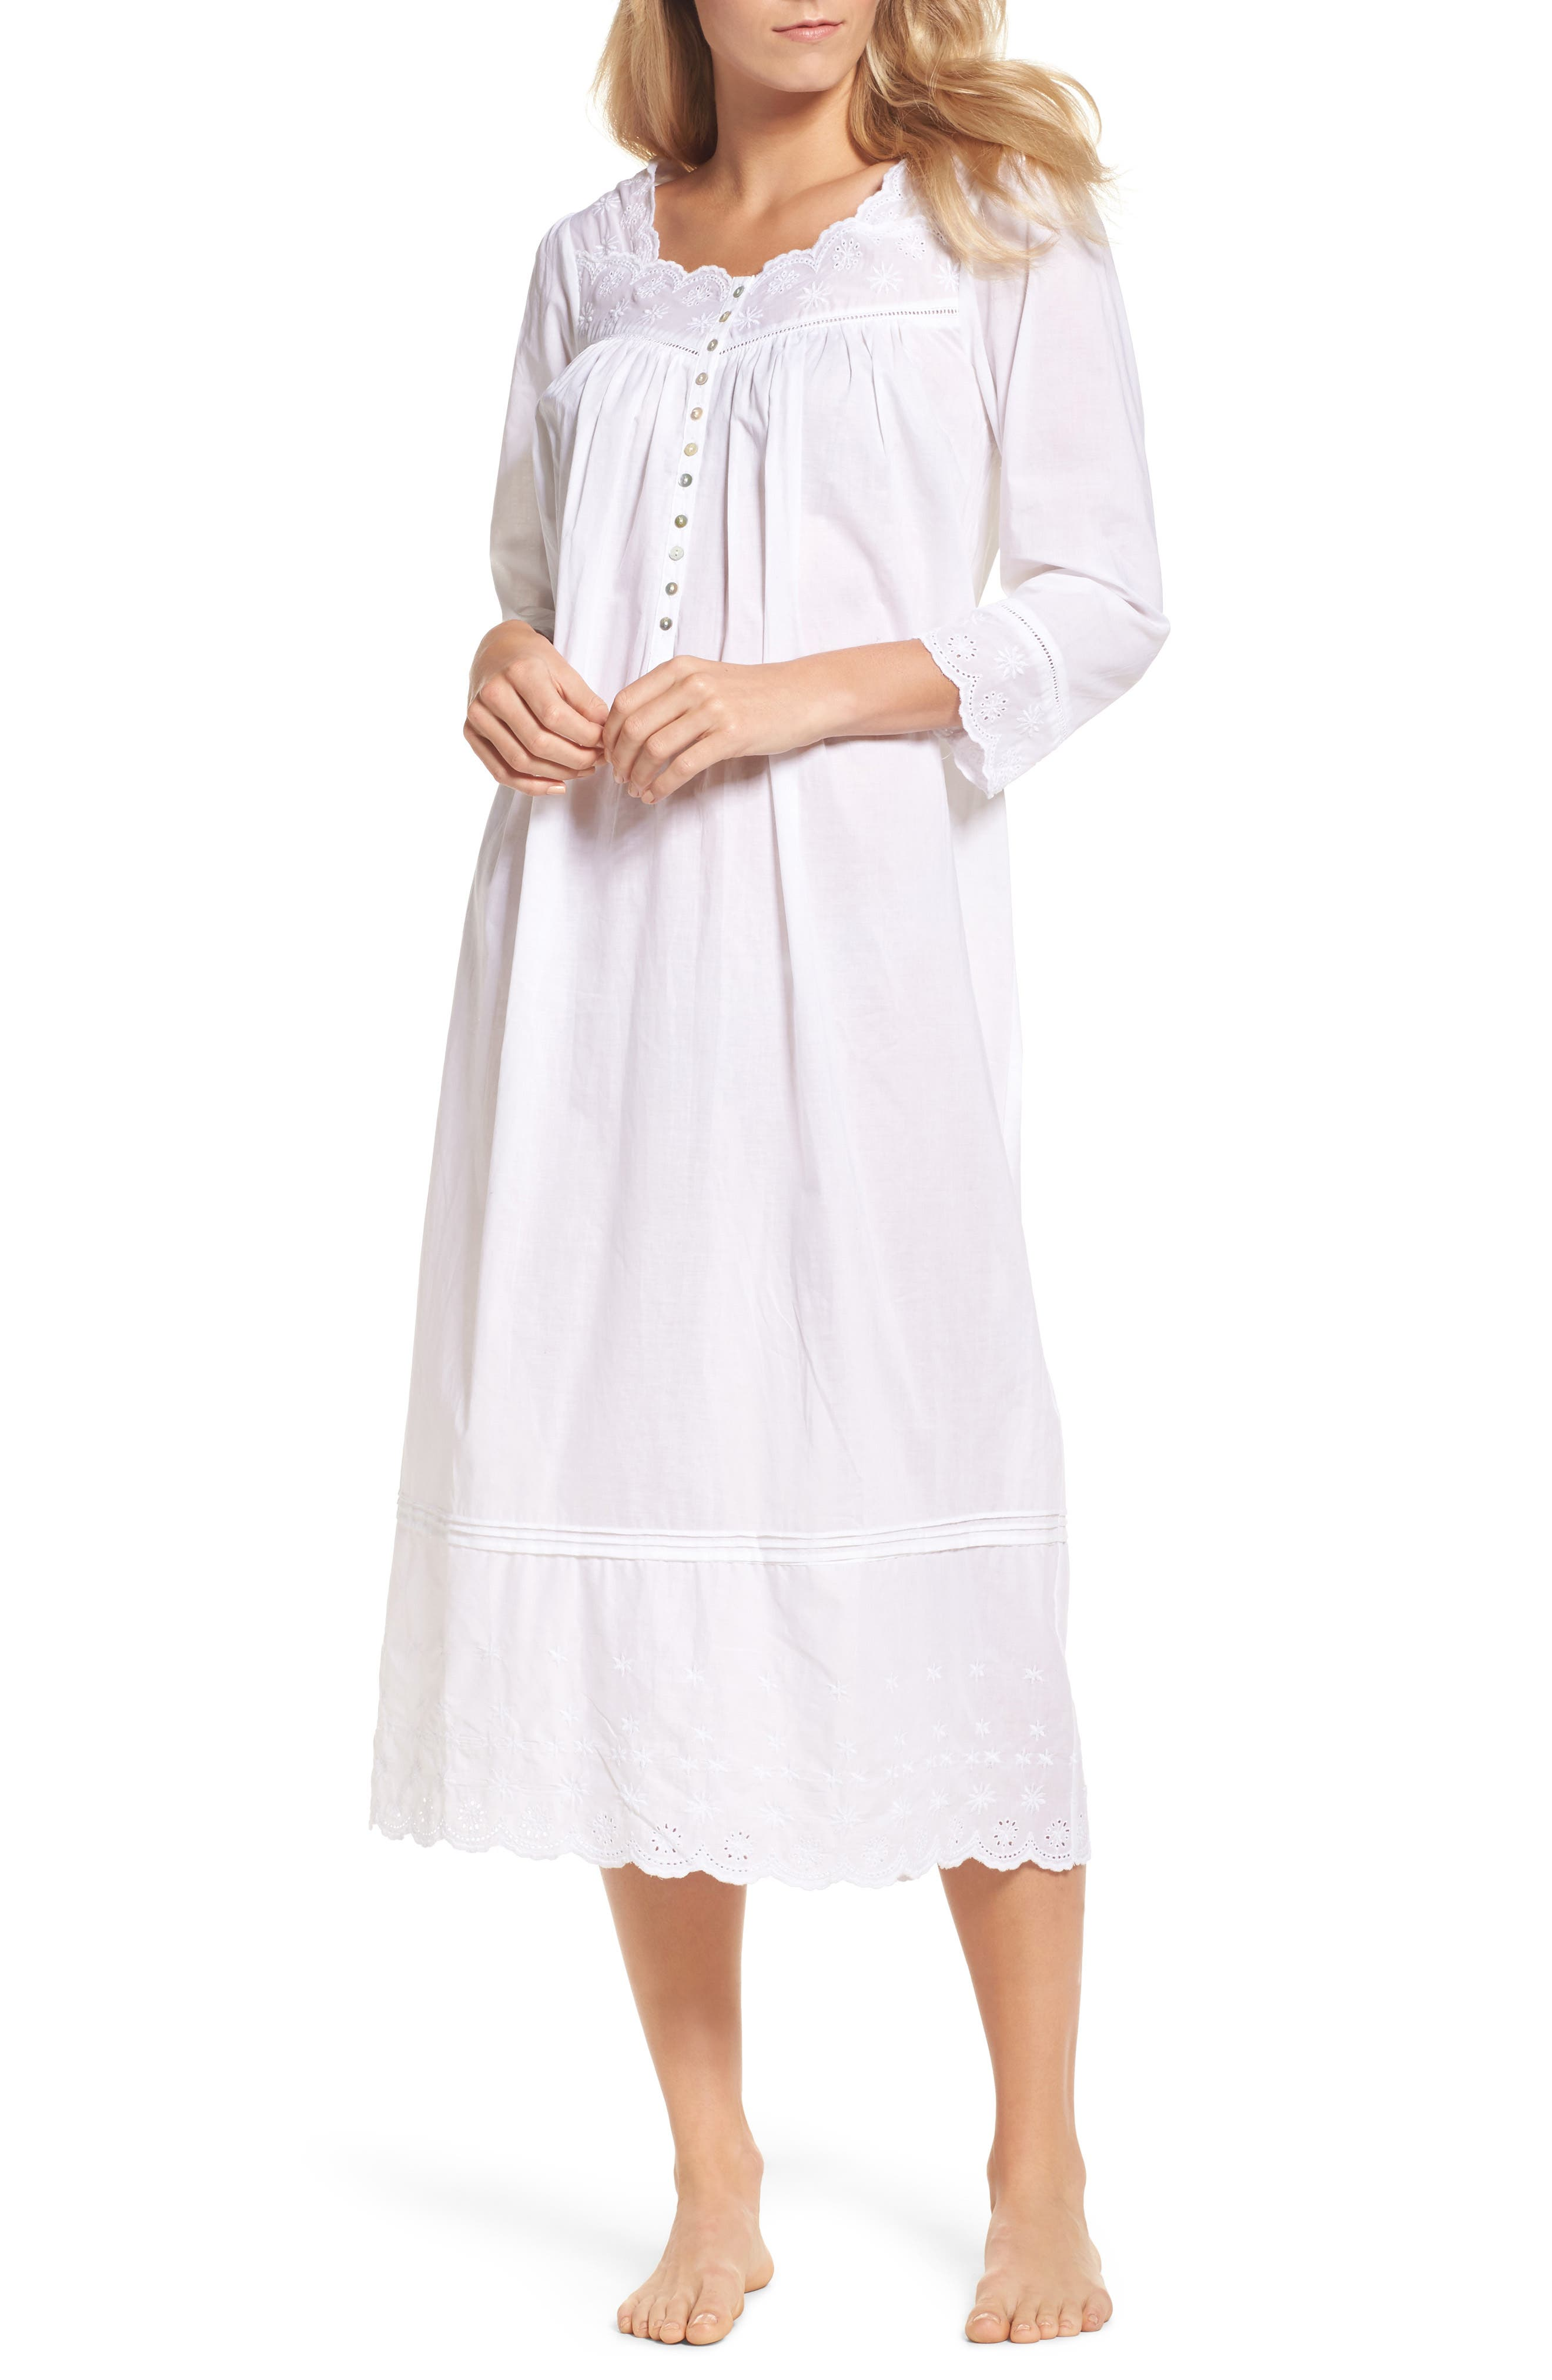 Eyelet Nightgown,                         Main,                         color, 101